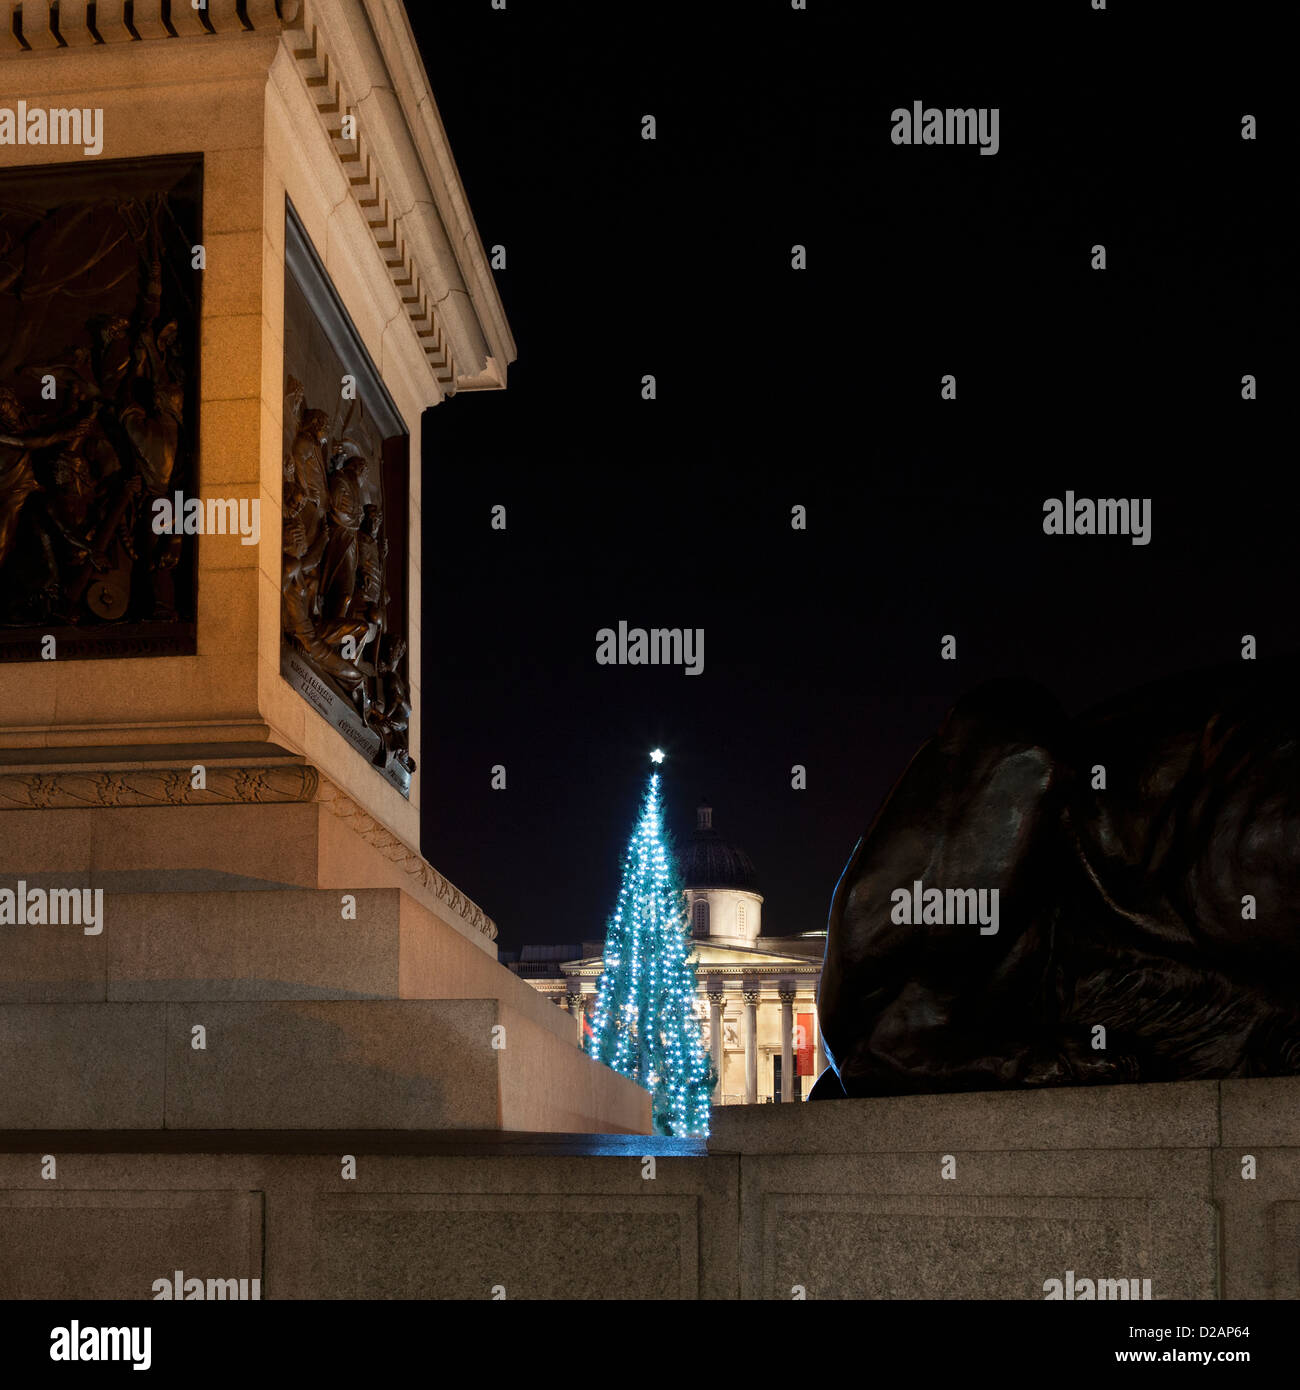 Christmas tree lit up in city square - Stock Image